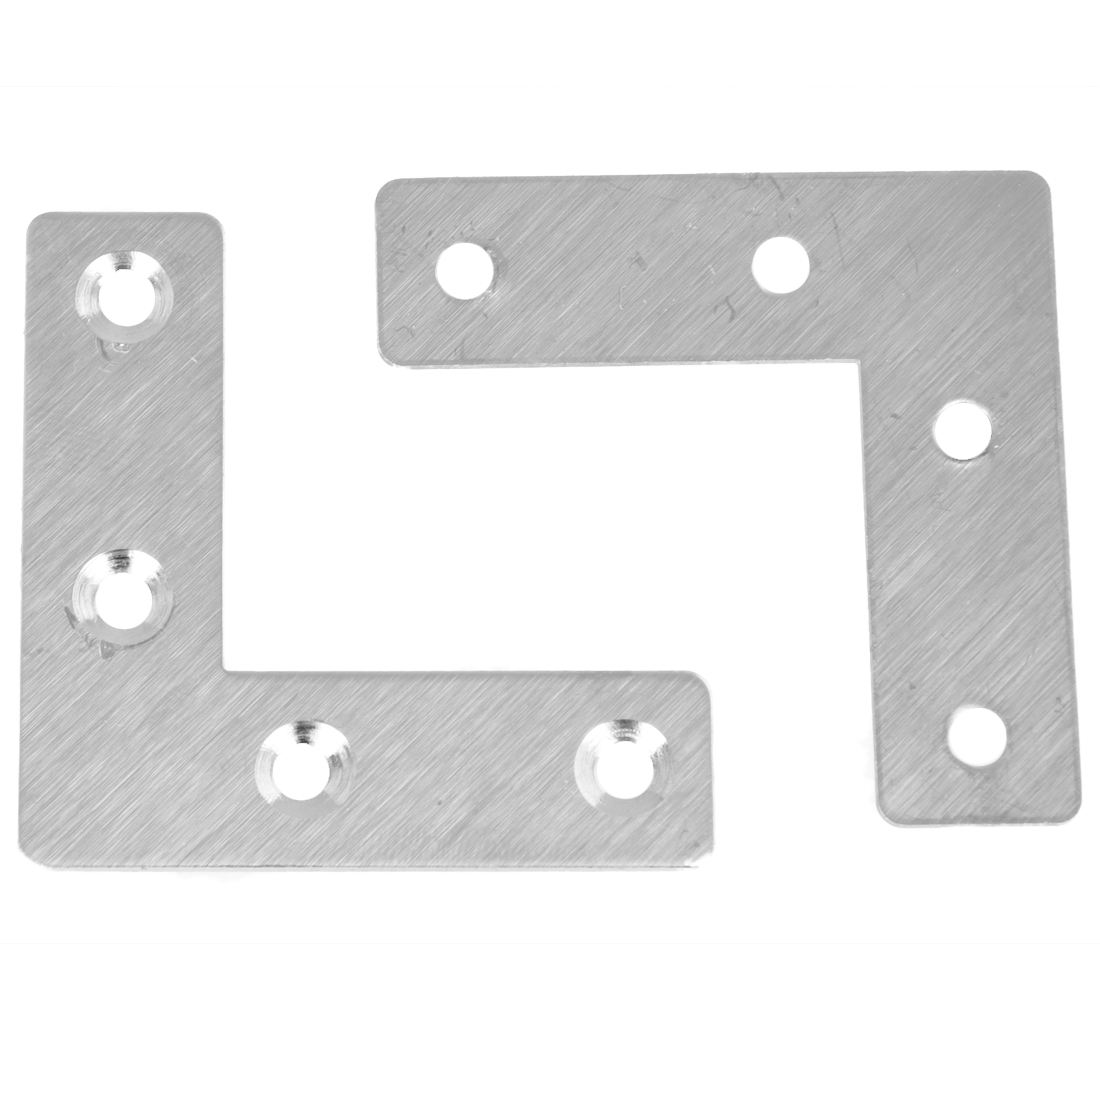 50 x 50mm Right Angle Plate Metal Corner Brackets Silver Tone x 5